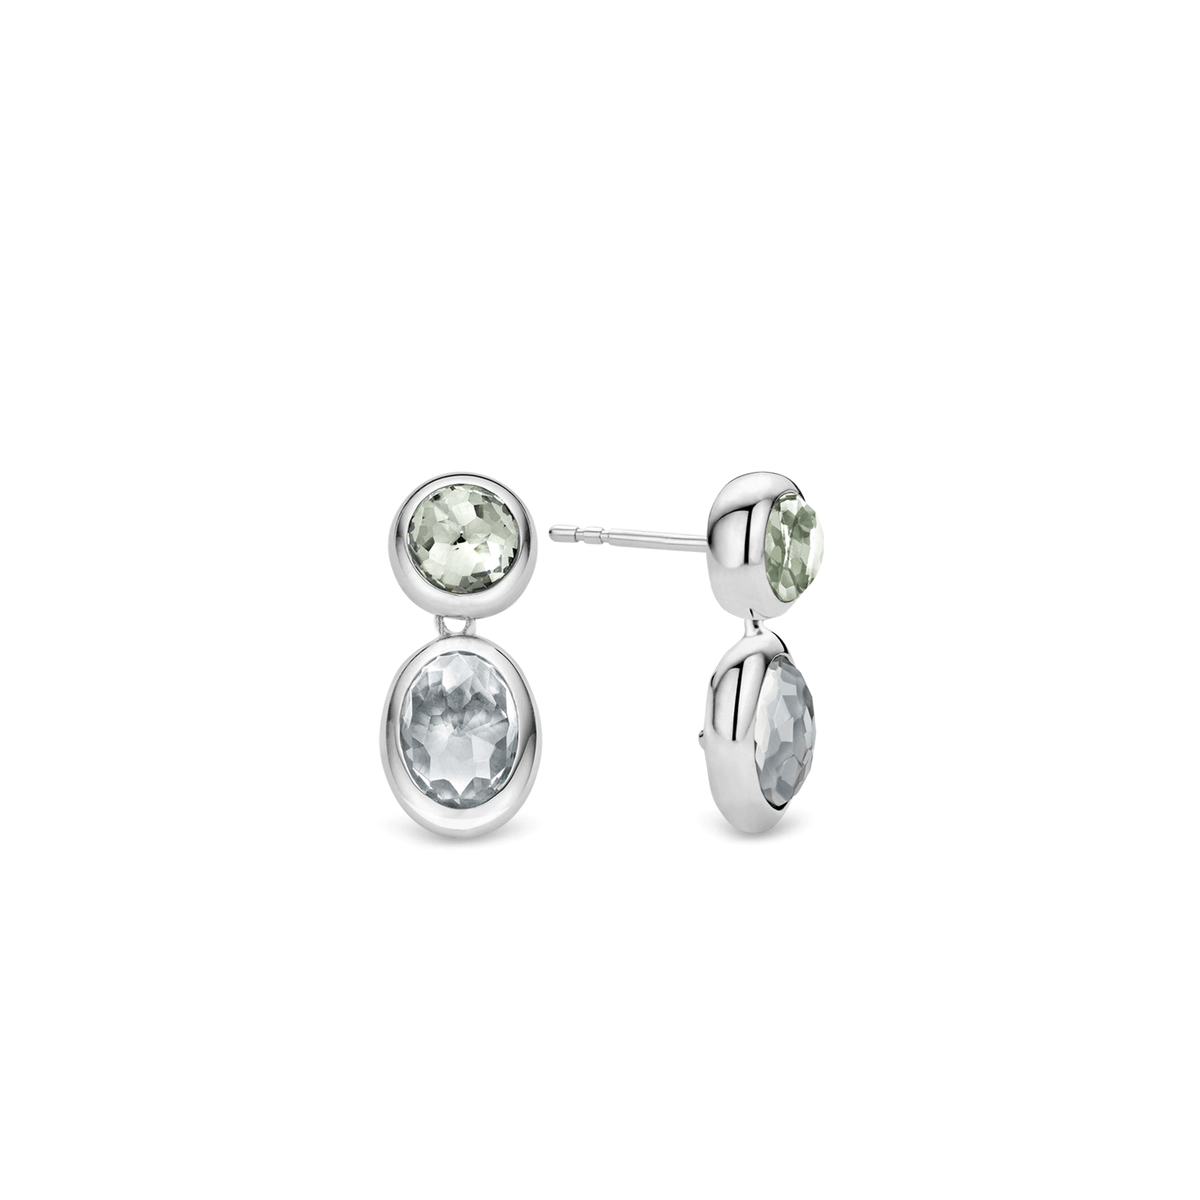 TI SENTO - Milano Earrings 7745BG